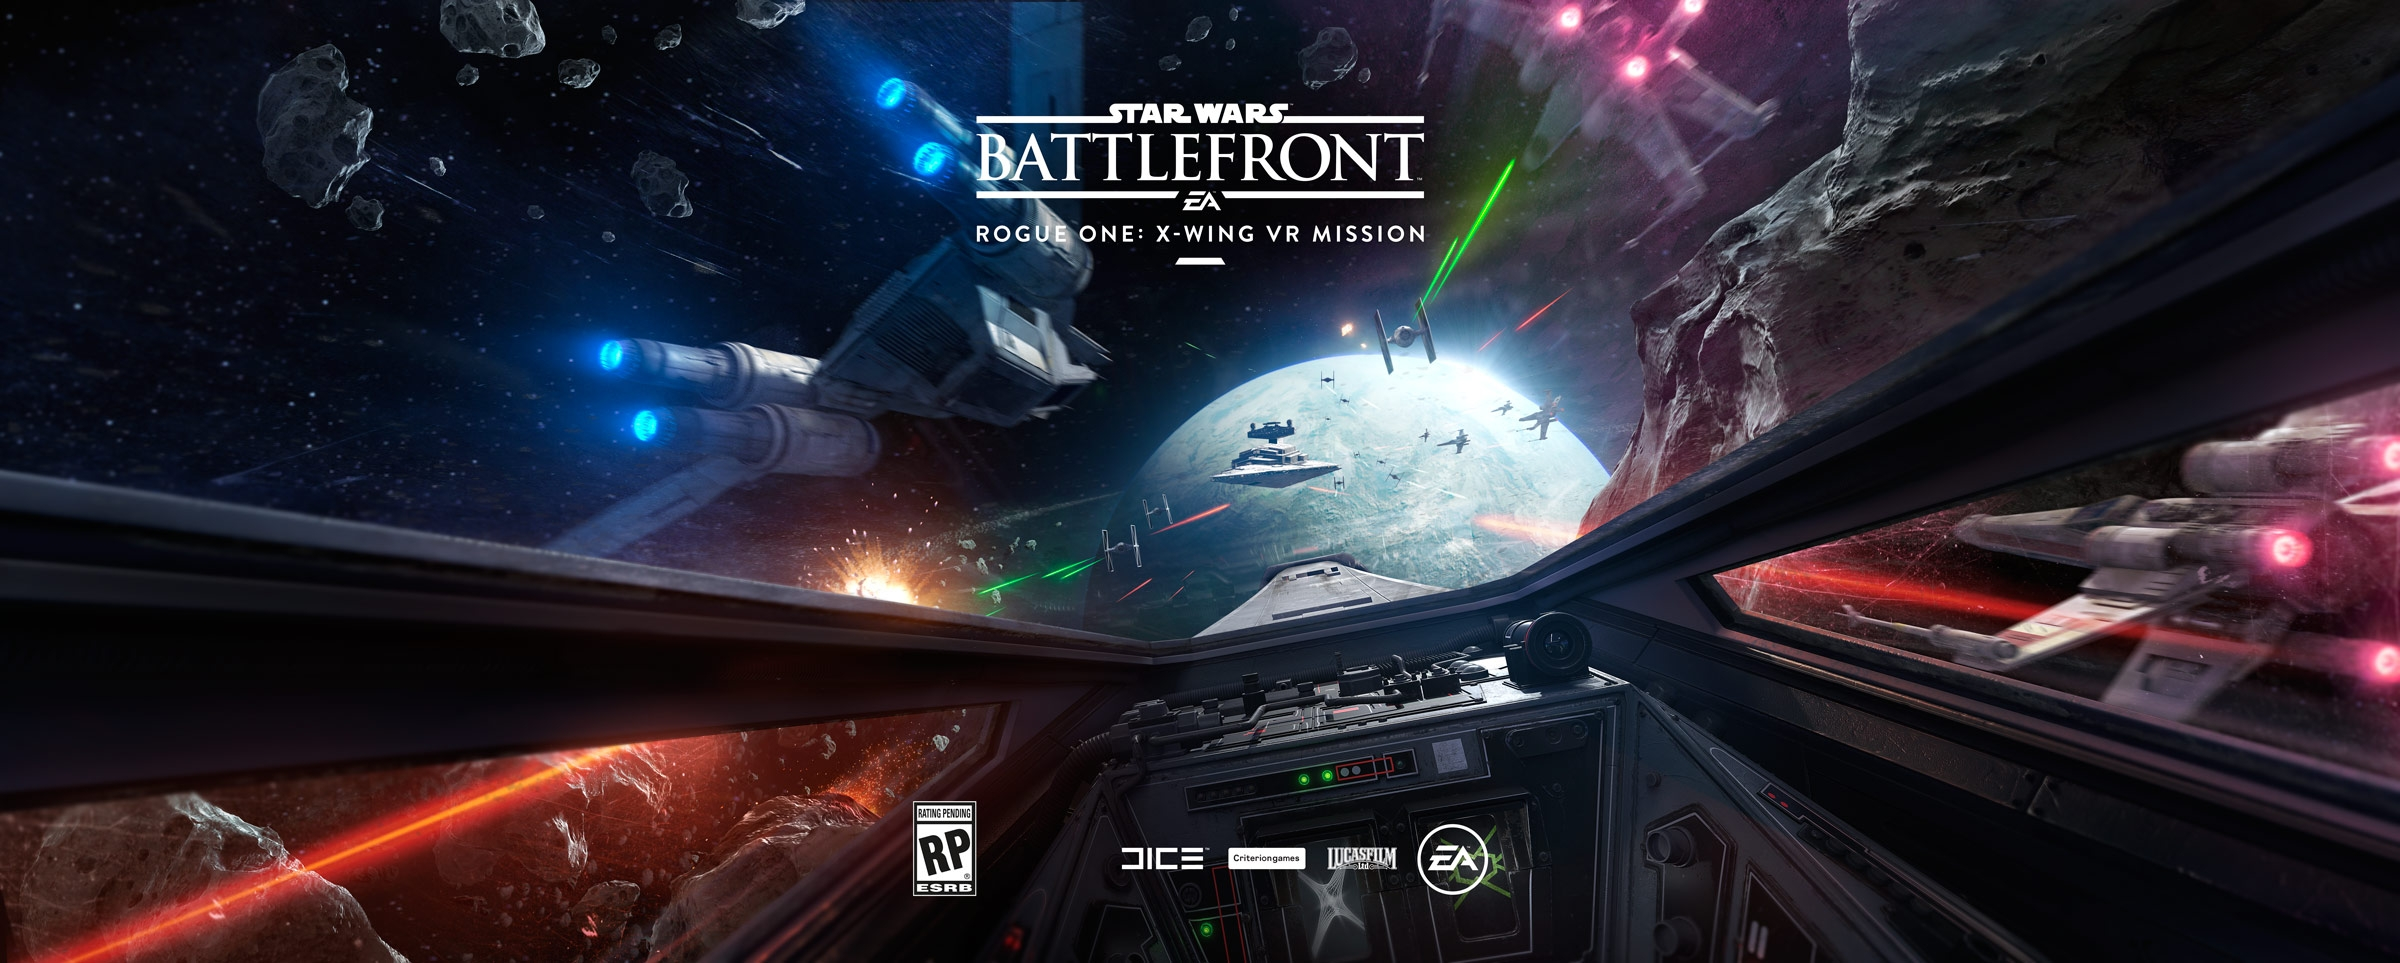 Star Wars Battlefront VR